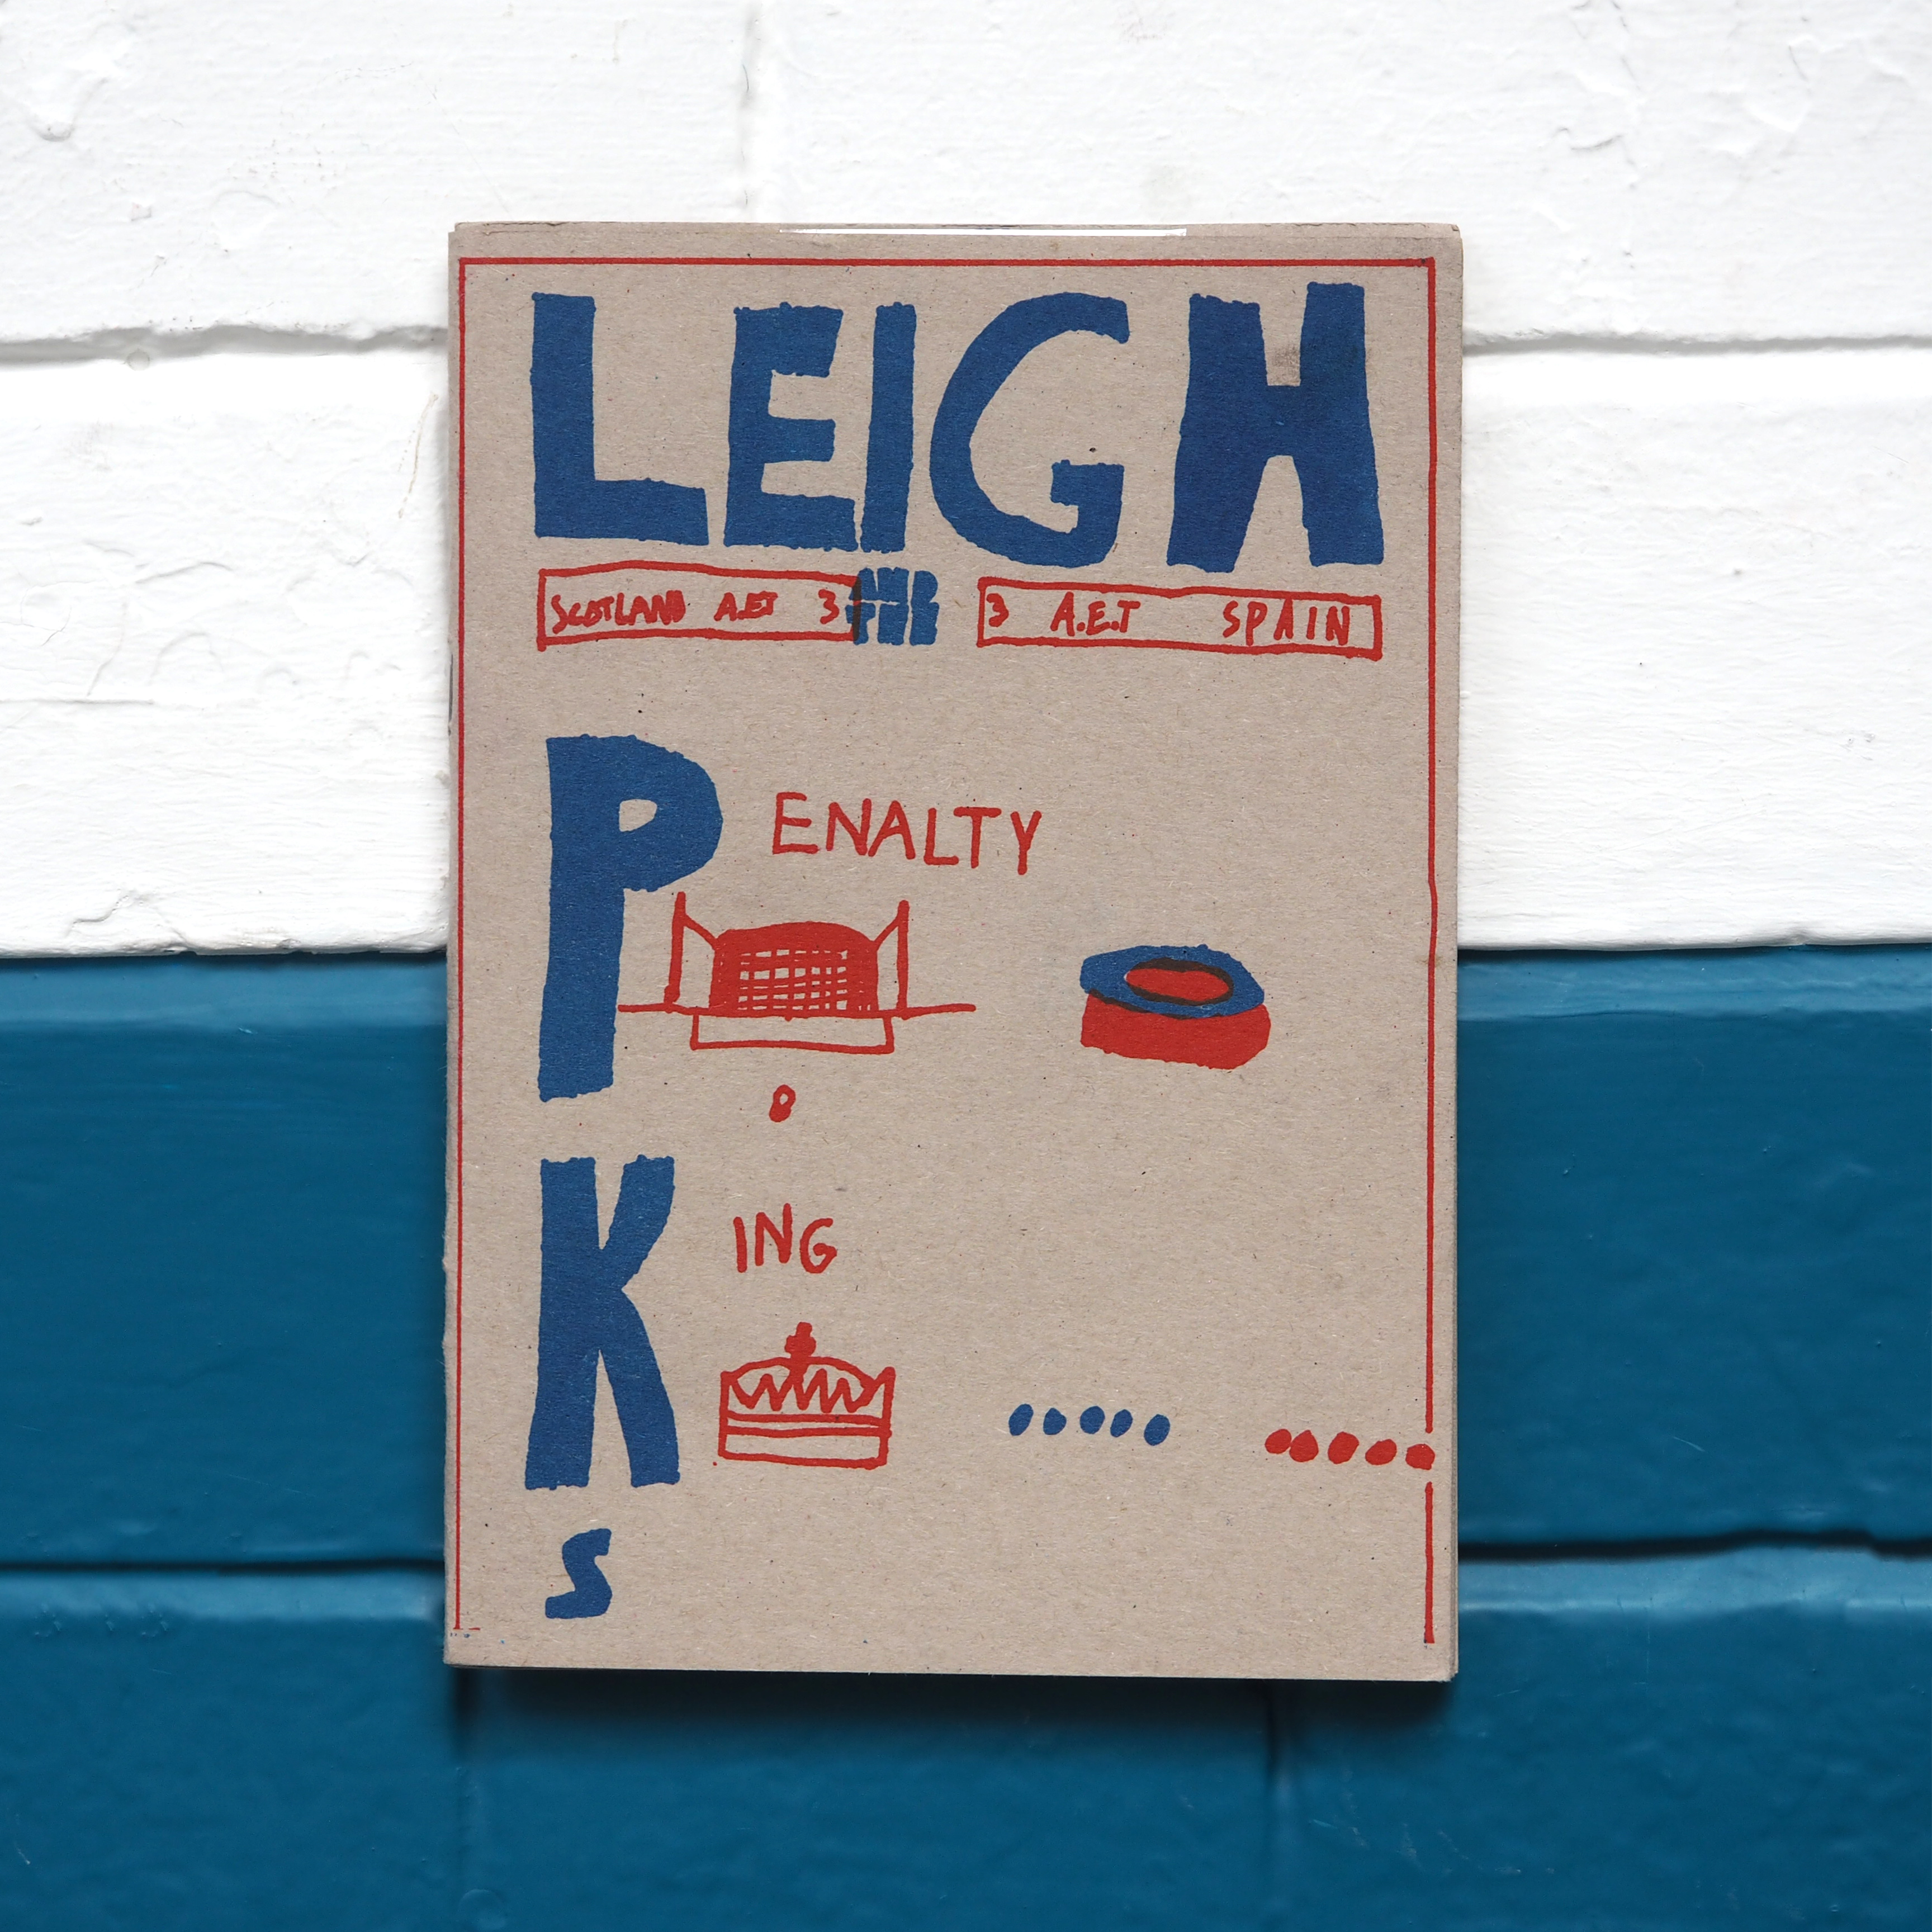 Leigh and the Penalty Kings